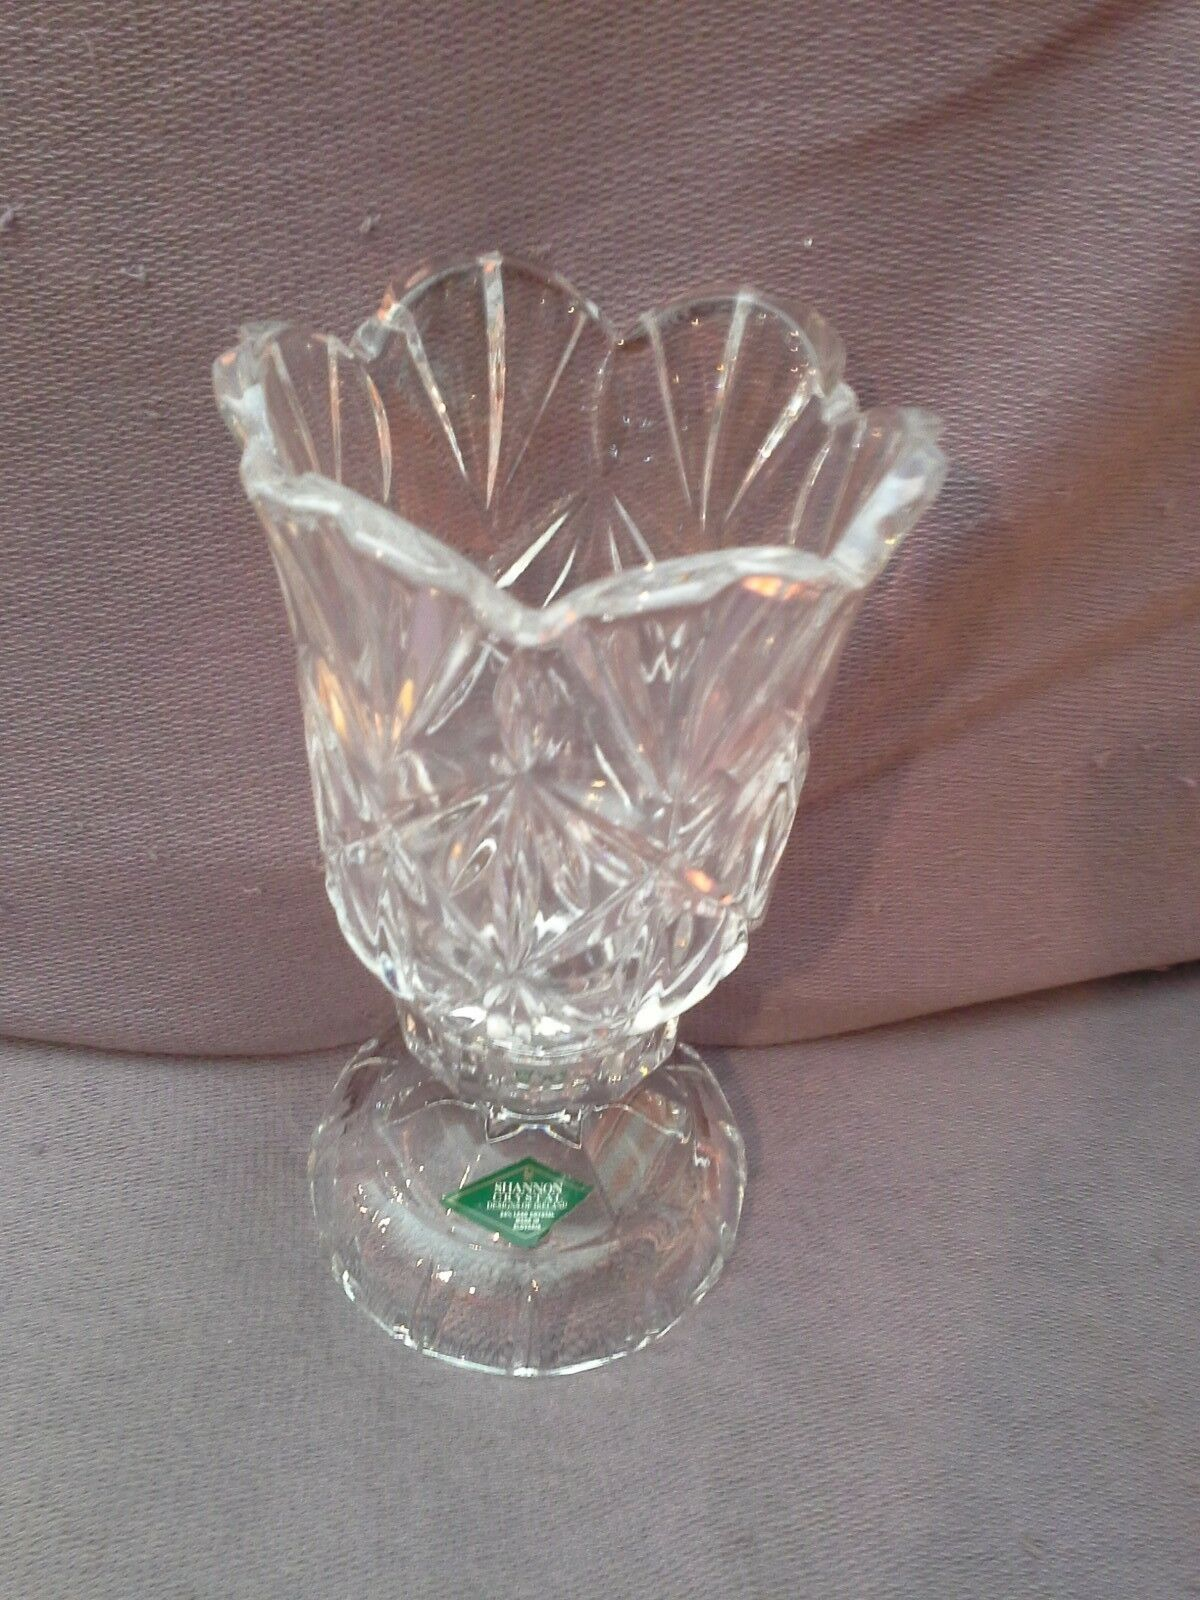 A Shannon Crystal Design Of Ireland Candle Holder For A 4